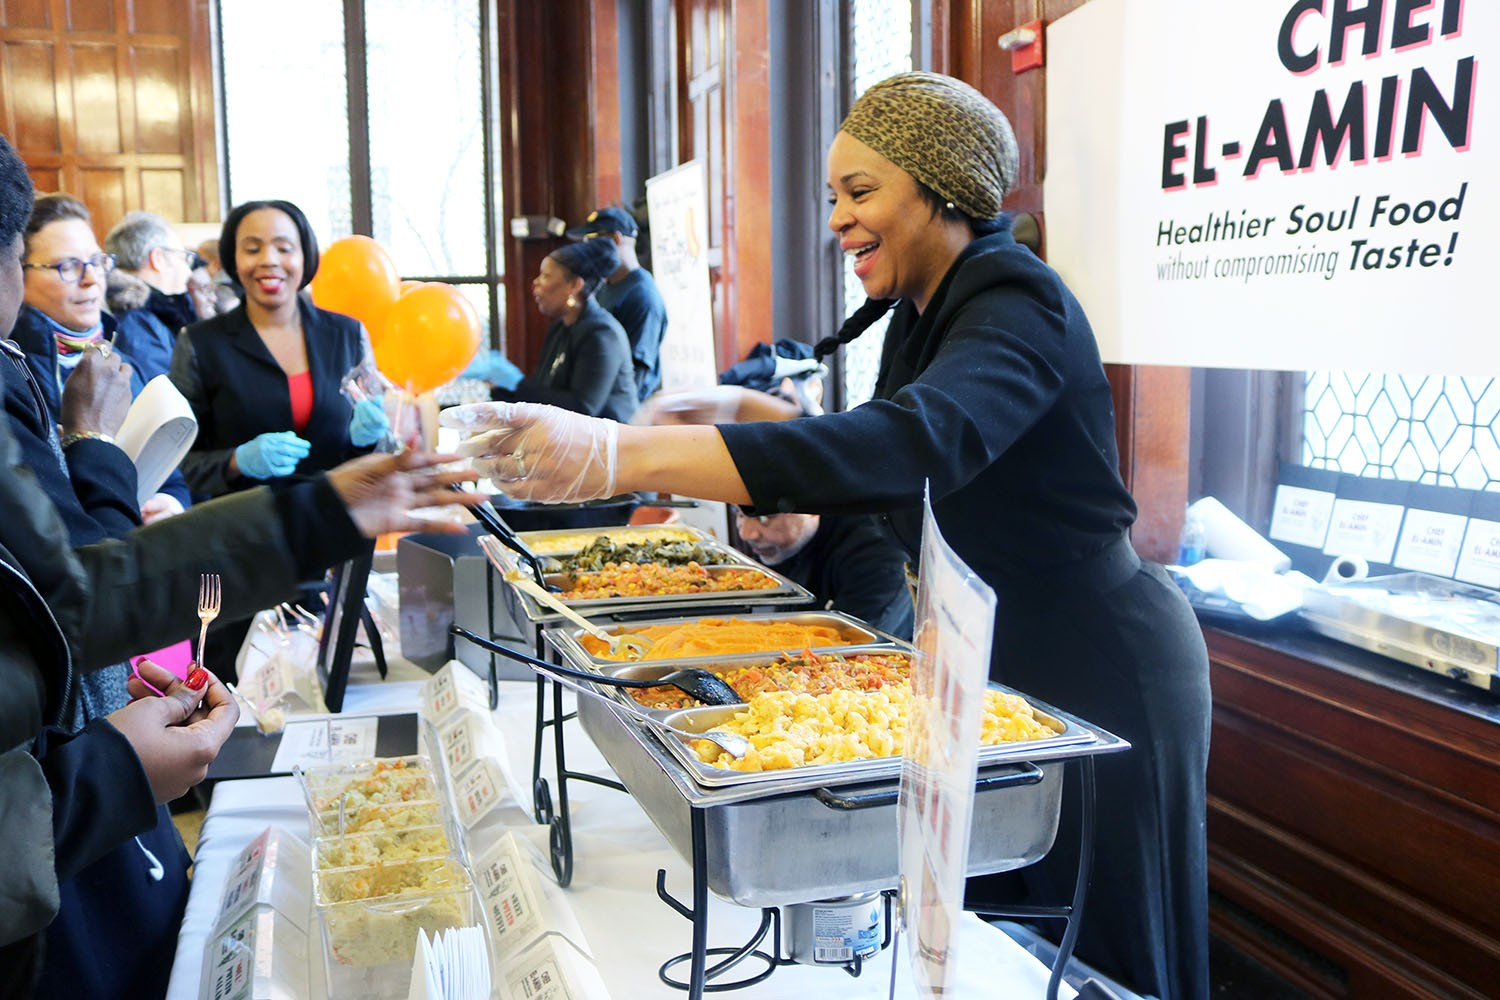 Vendor Chef El-Amin serves samples to participants at the Harlem Buyer Fair in John Jay Dining Hall